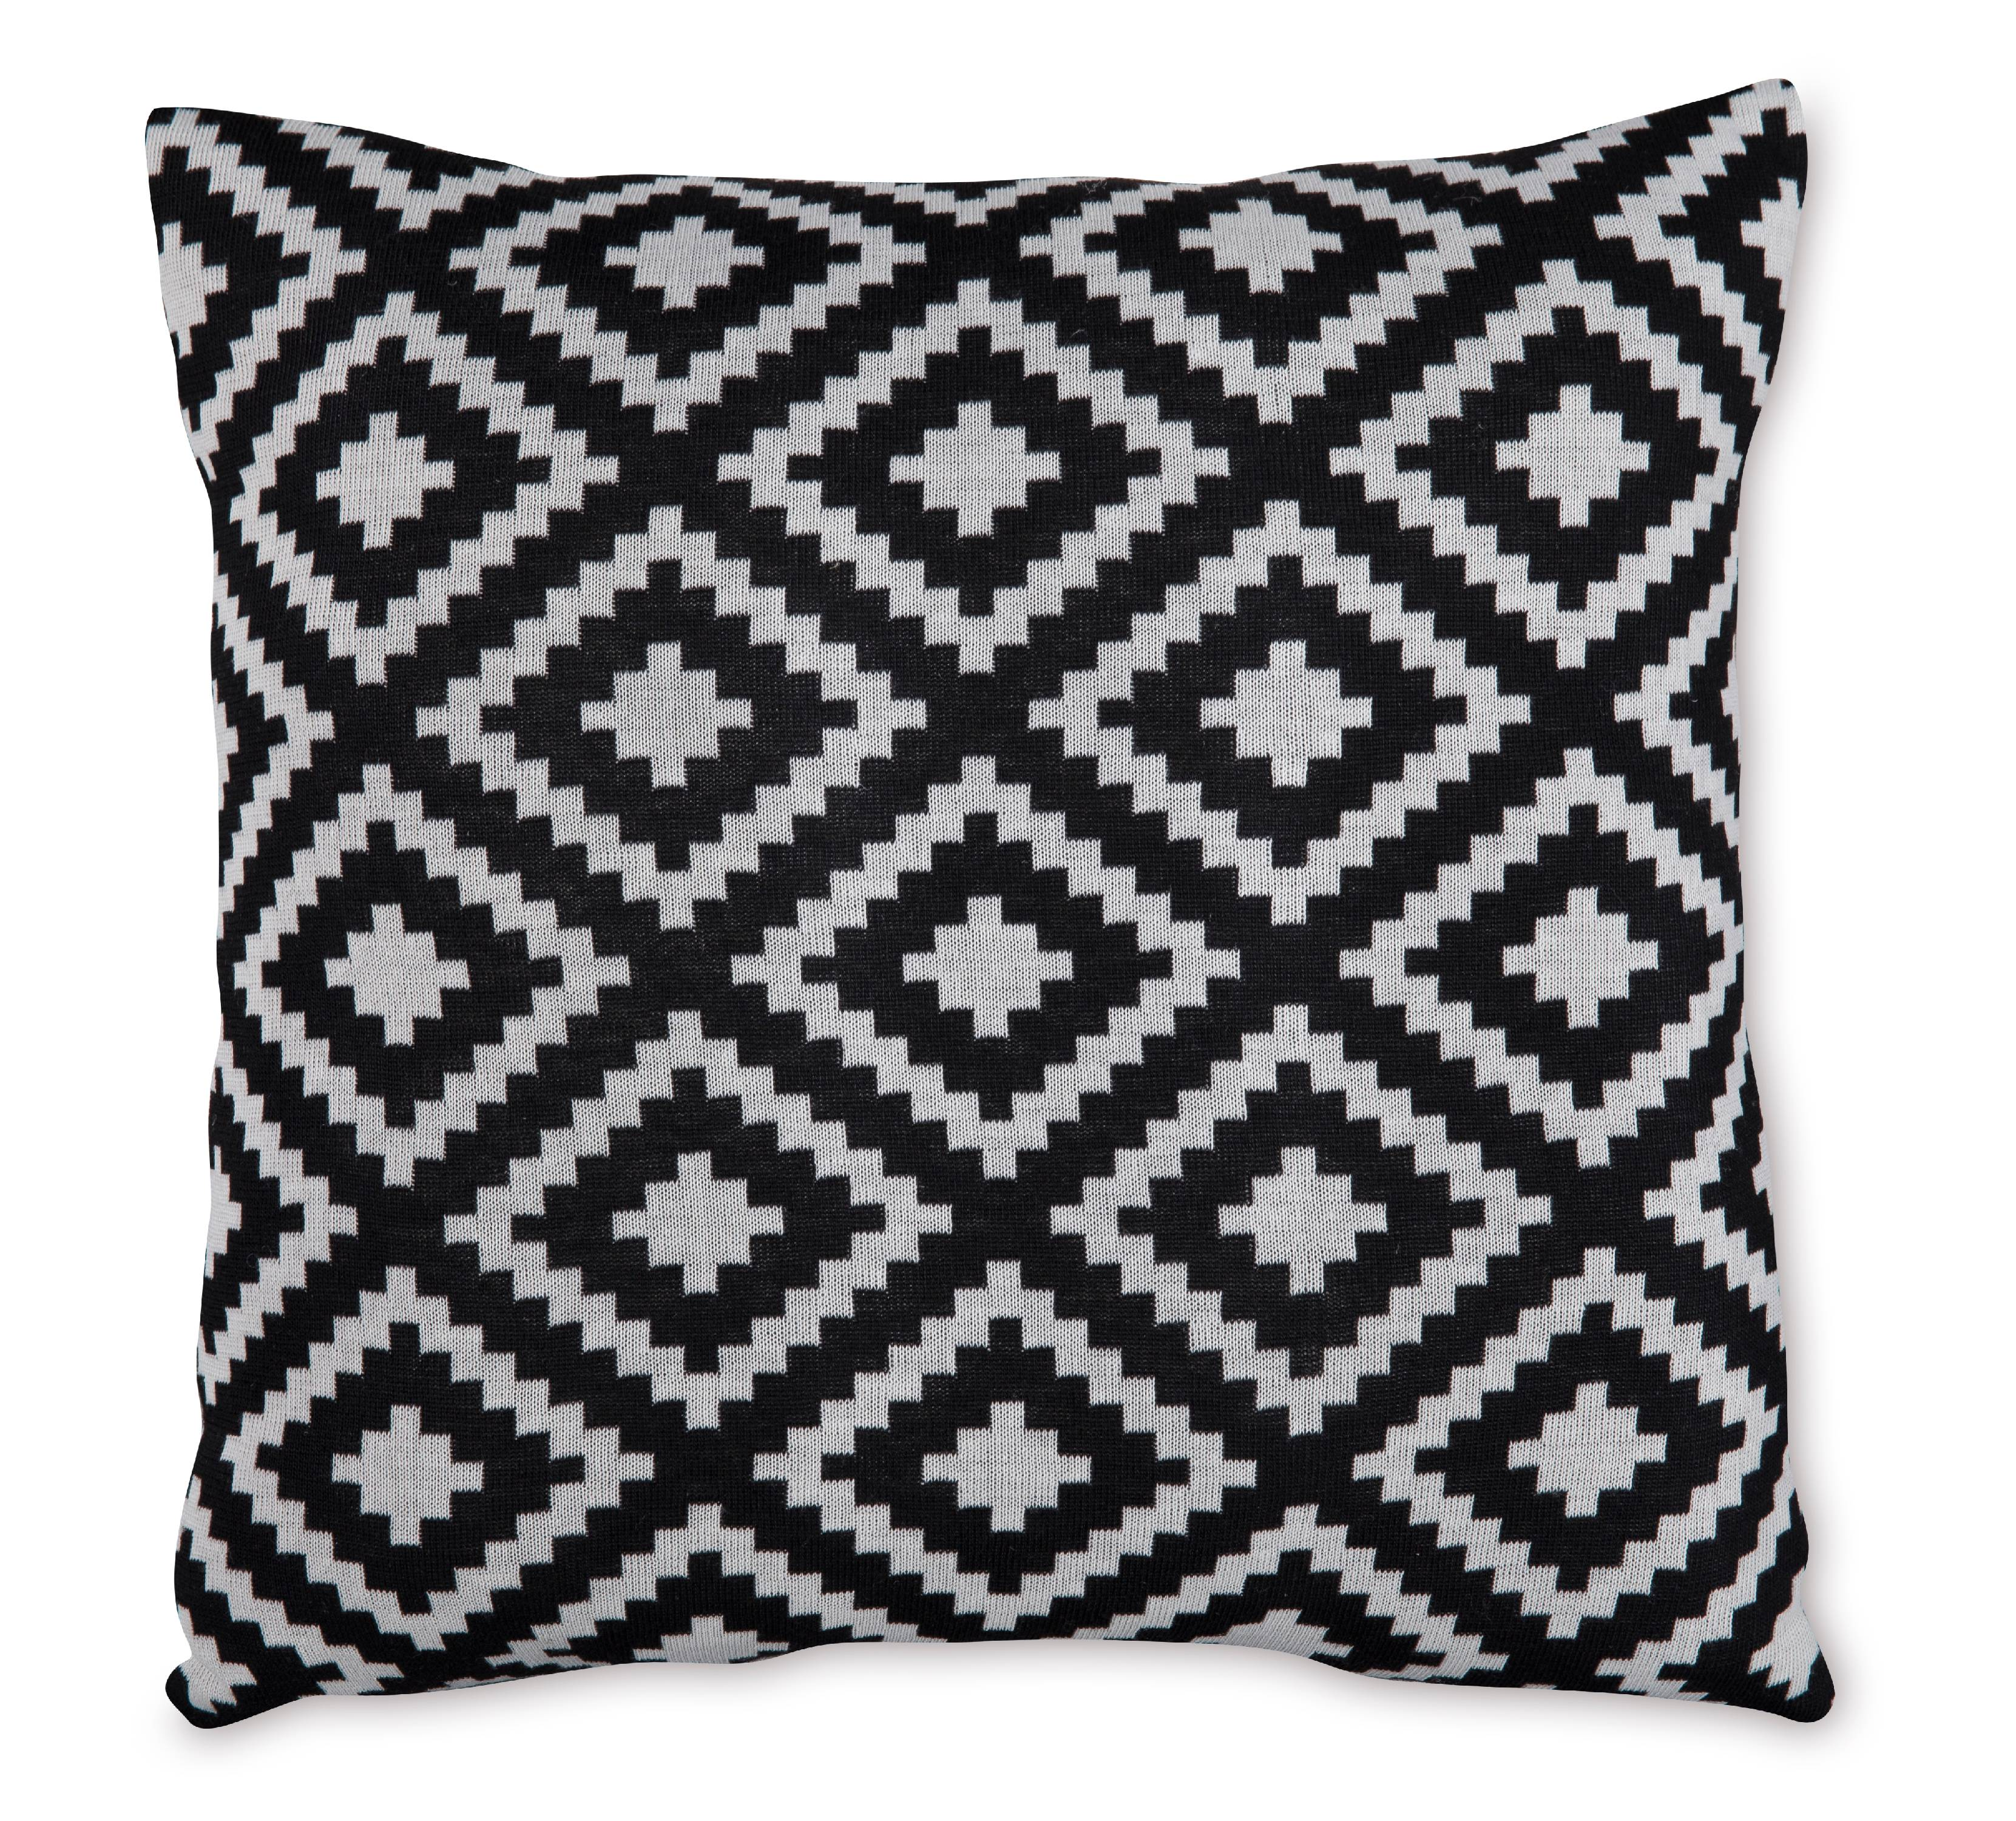 "Mainstays Sweater Knit Diamond Decorative Throw Pillow, 18"" x 18"", Black"